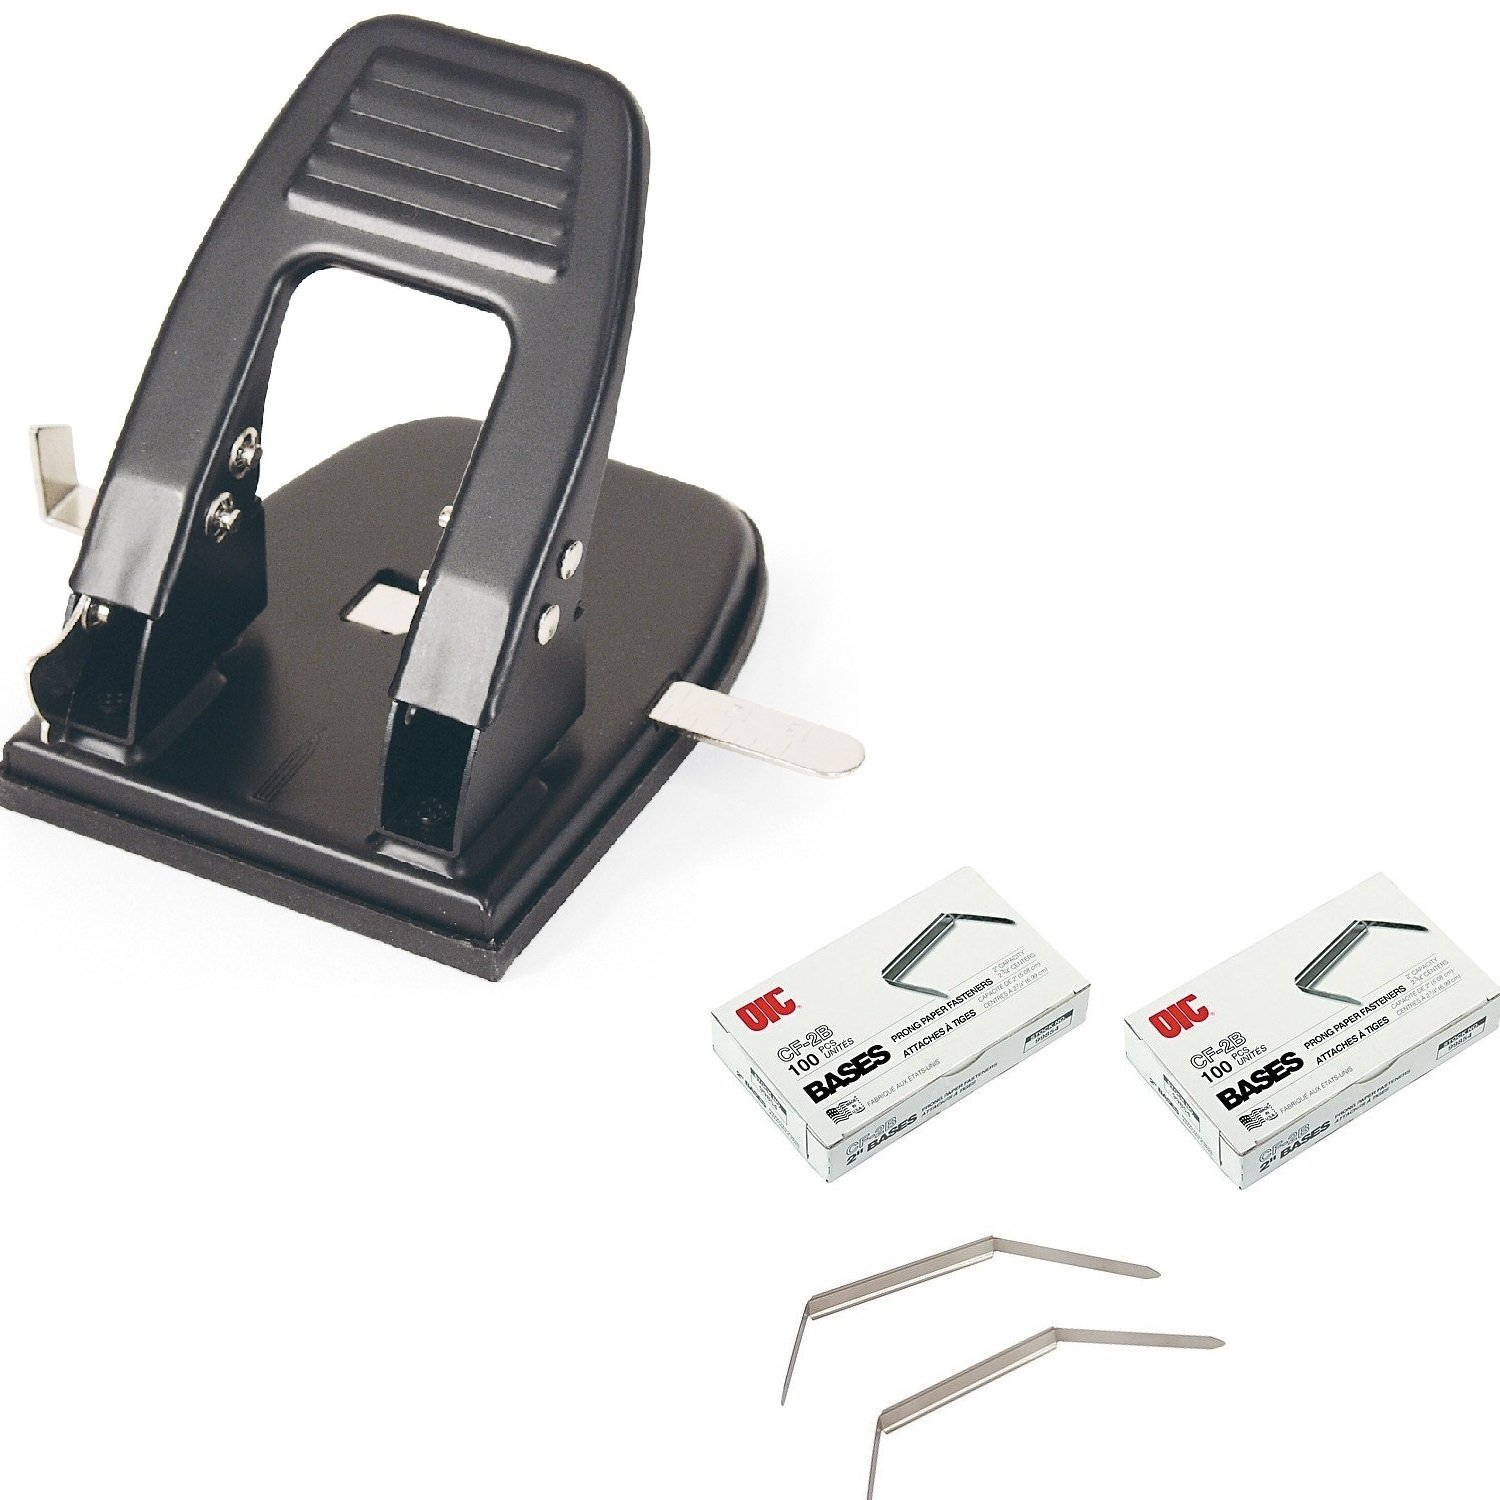 Officemate 2 Hole 2-3/4 Inch Punch 30 Sheet Capacity, Black (90092) and Prong Paper Fastener, Bases Only, 2 inch Capacity, 2-3/4 inch Base, Pack of 2 Boxes 200 Pcs (99854)